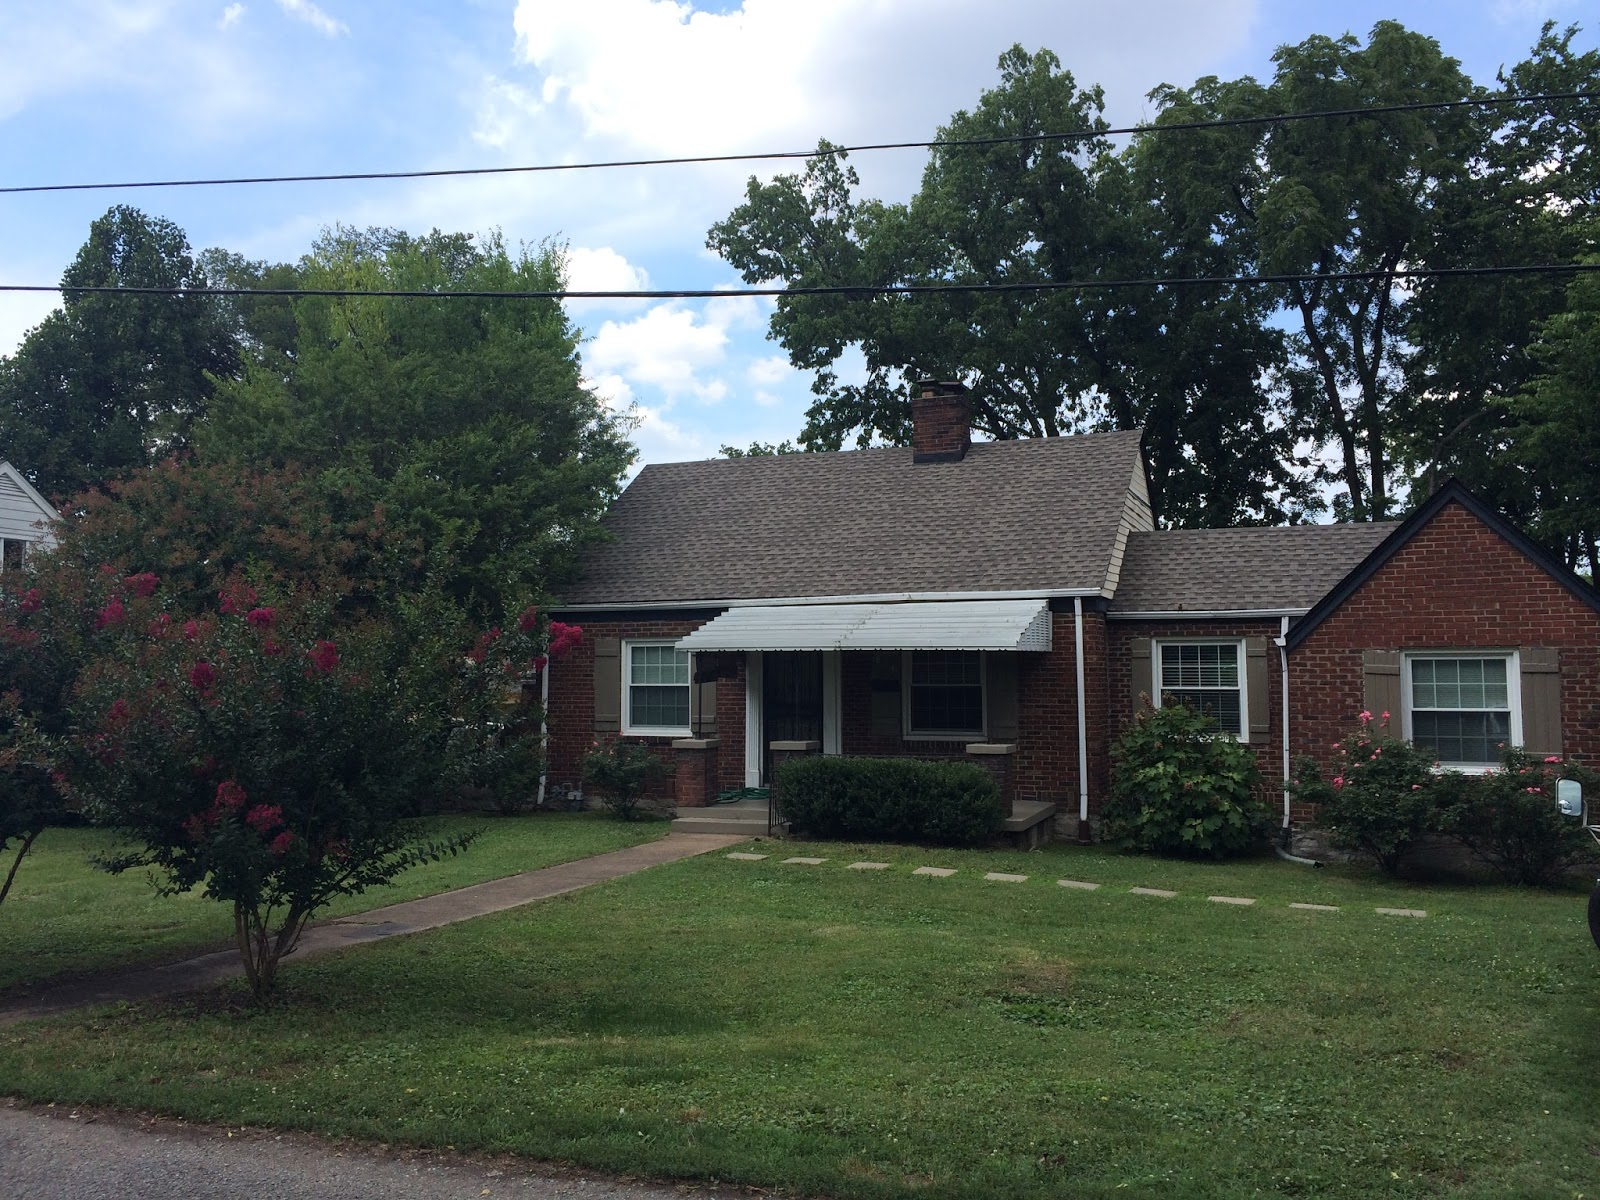 . House for Rent 12th Ave South  Nashville Tennessee